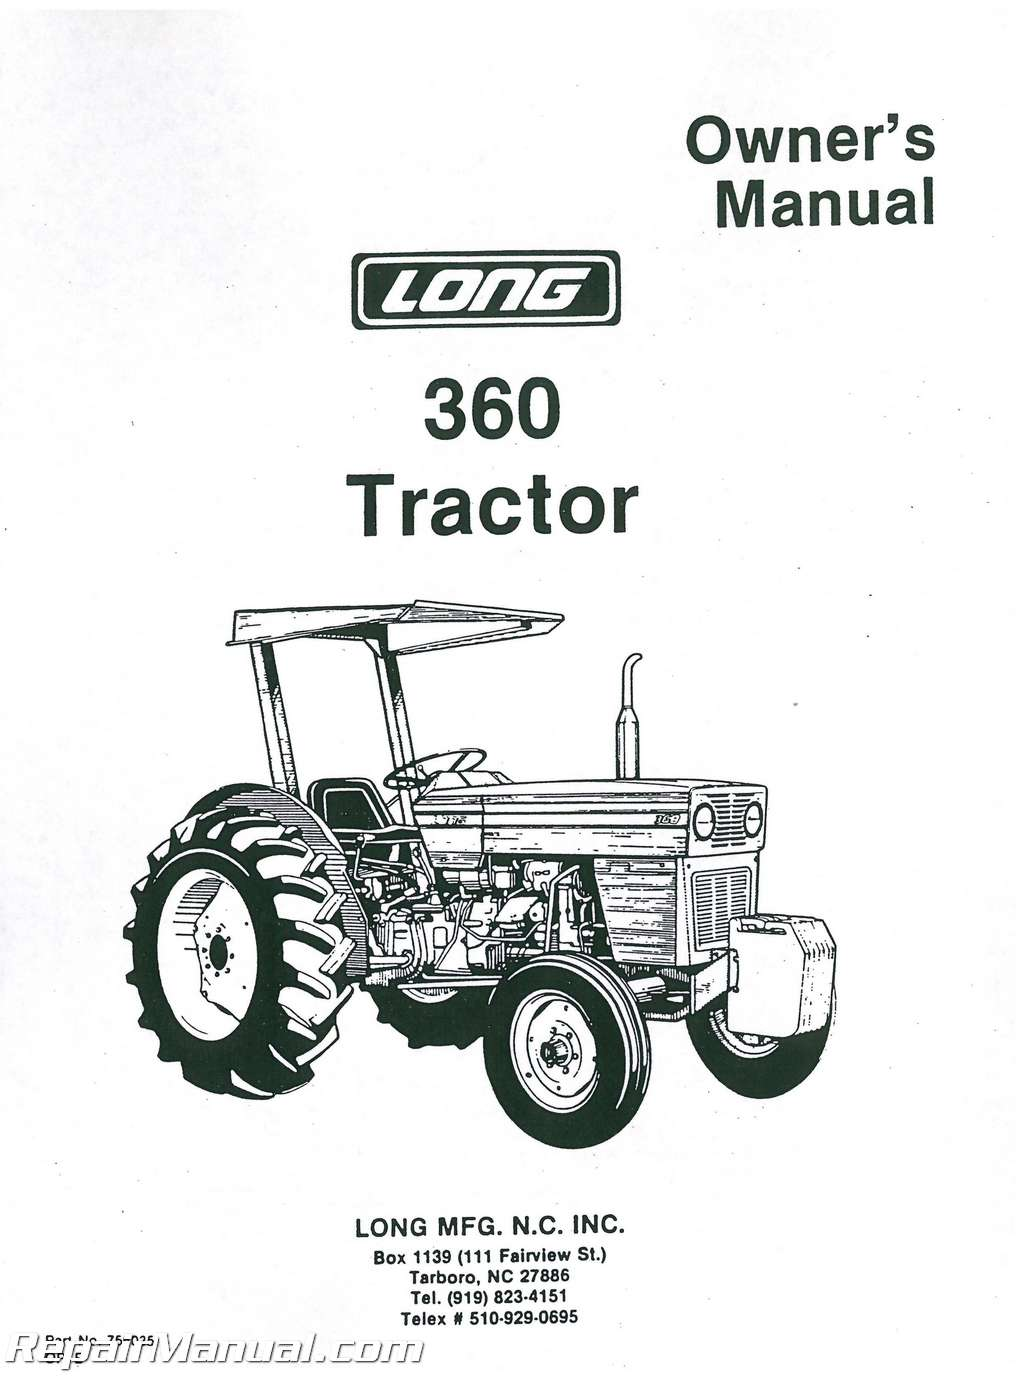 long tractor manuals tractor starter wiring diagram long 360 diesel tractor operators manual rh repairmanual com long 445 tractor parts 610 long tractor manual